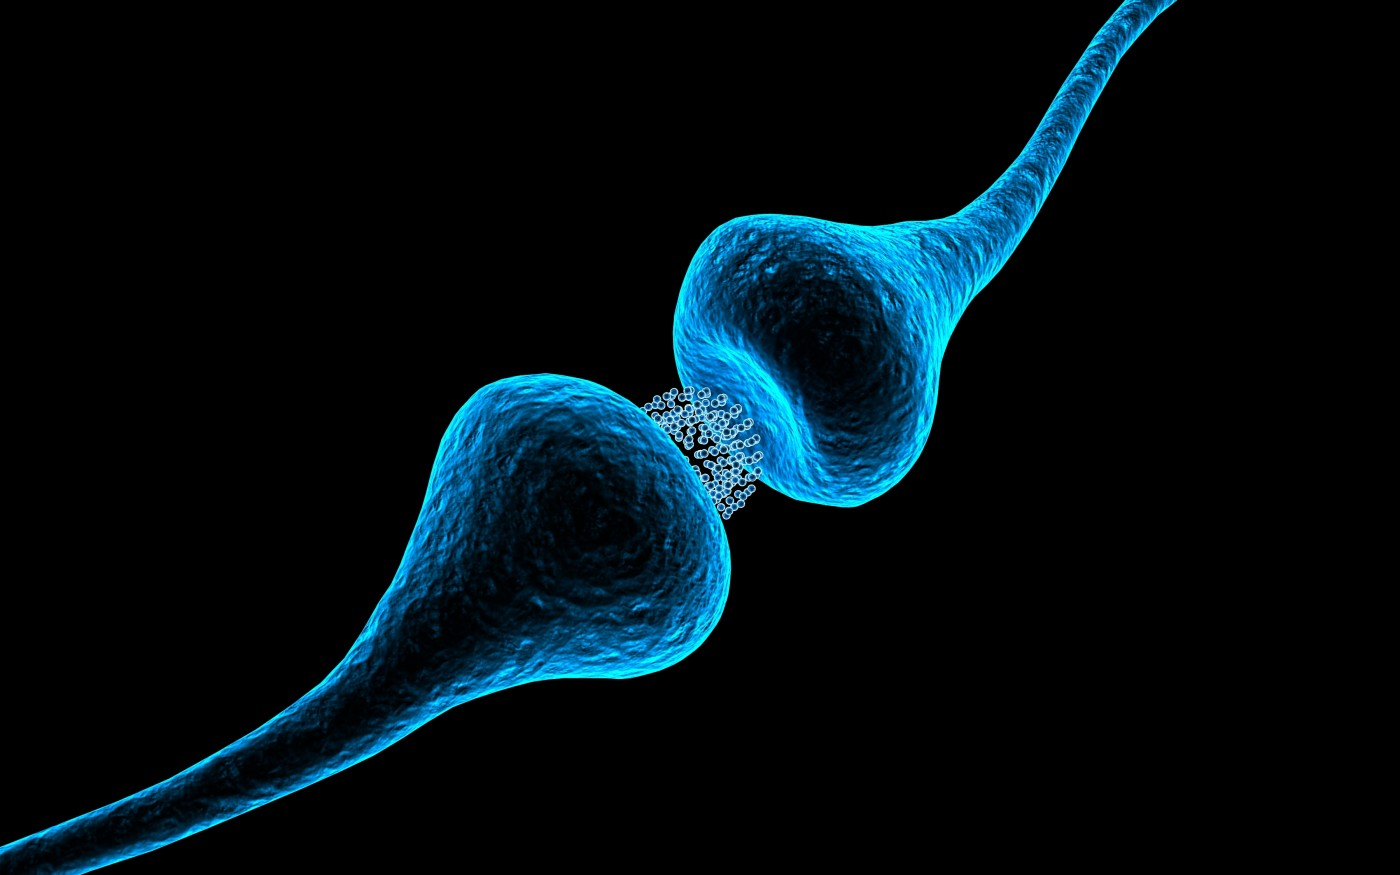 Synapses in a mouse model of MS are damaged in a process unrelated to myelin damage.